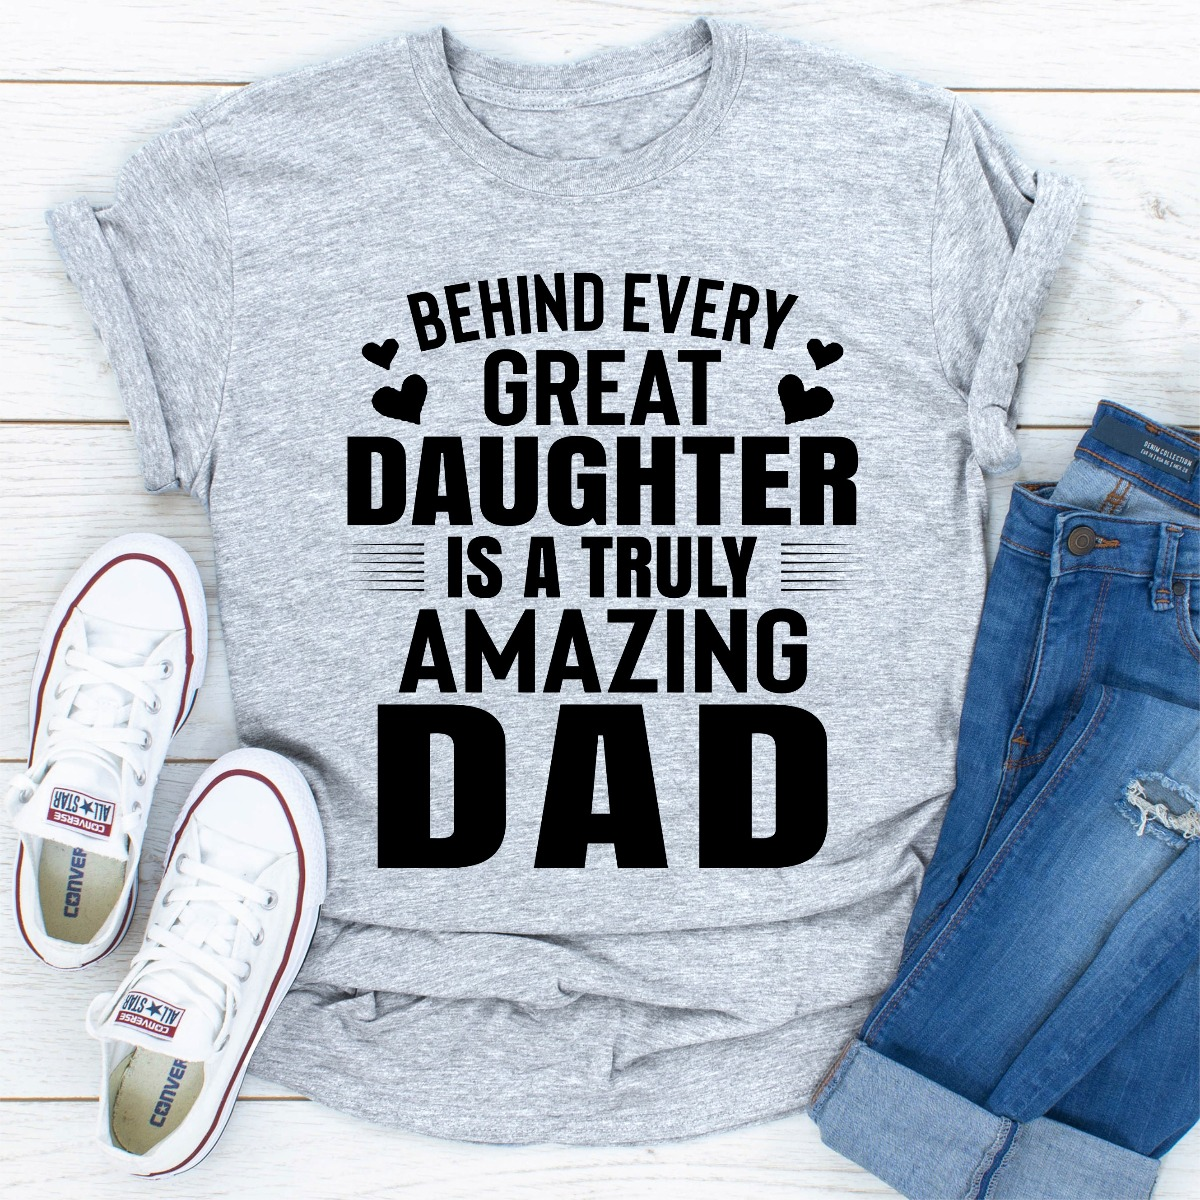 Behind Every Great Daughter Is A Truly Amazing Dad (Sport Grey / Xl)